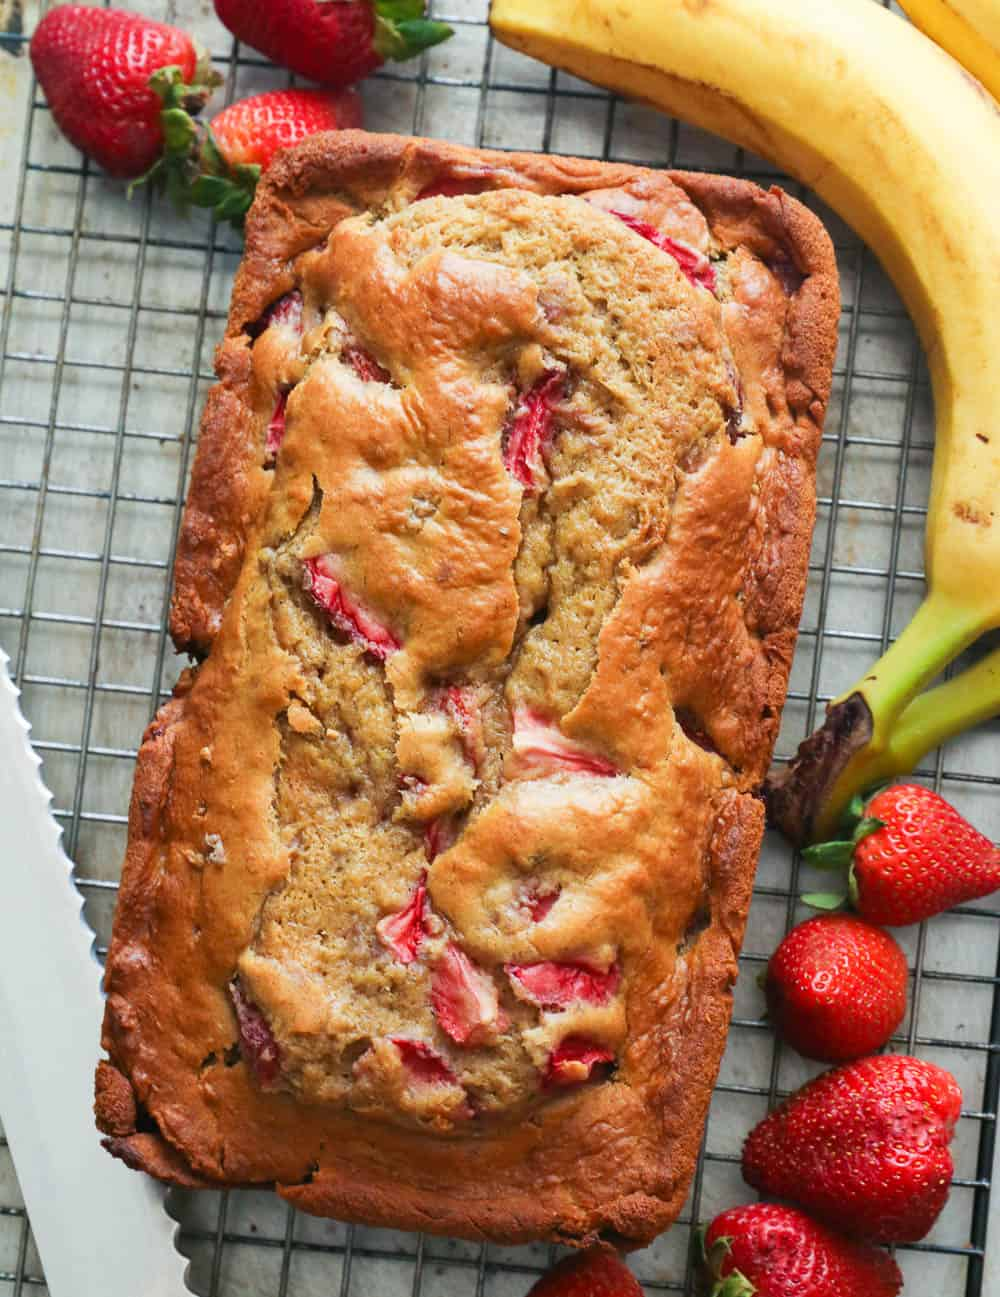 Strawberry Banana Bread on a Cooling Rack